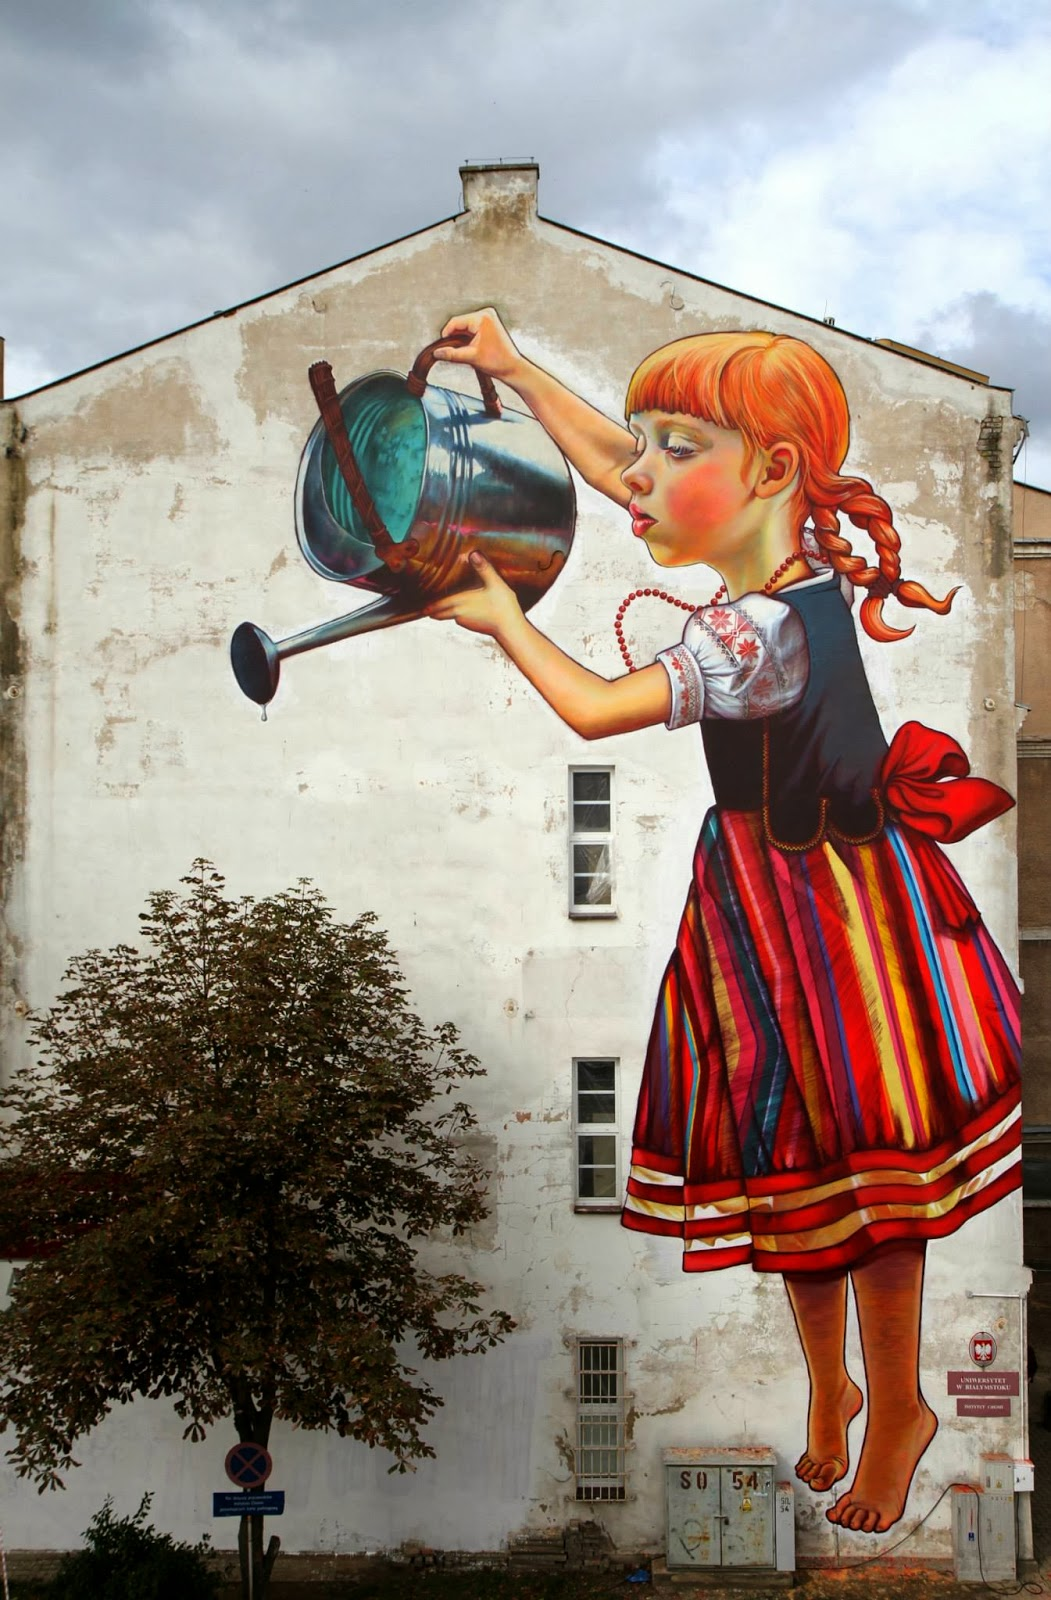 Natalia rak new mural for folk on the street bia ystok for Mural art images